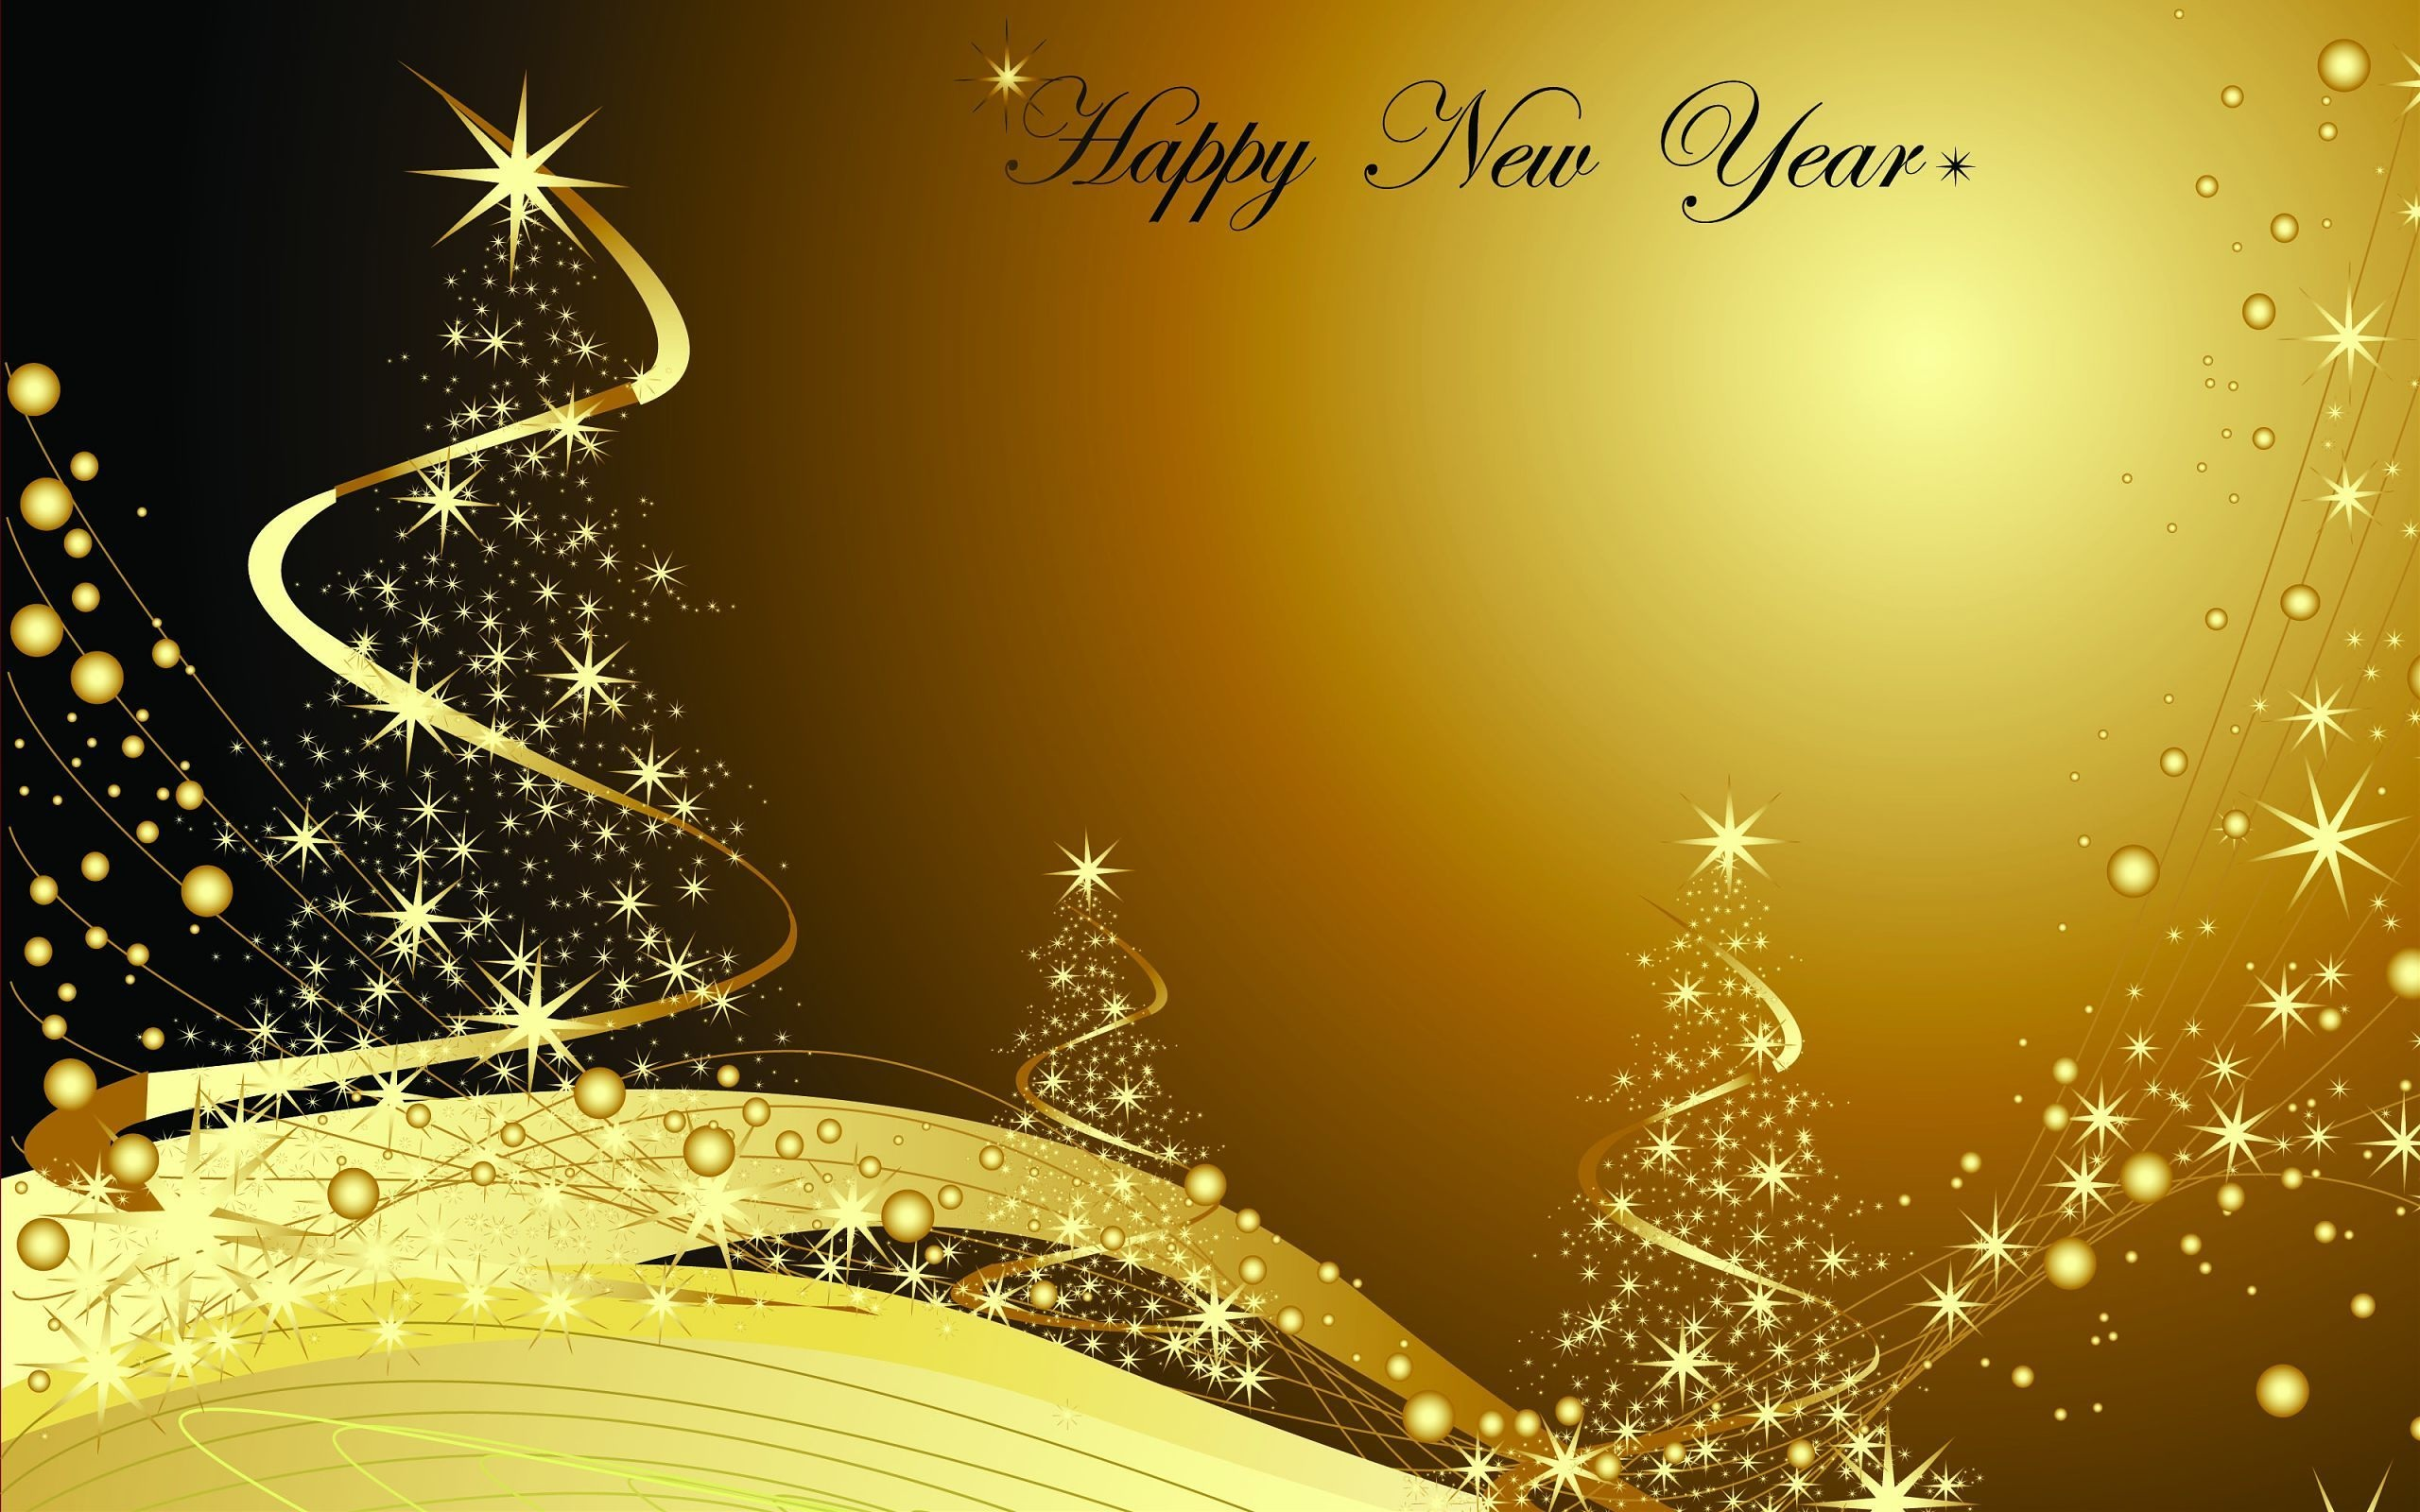 happy new year 2016 hindi sms shayari messages wishes images hd.